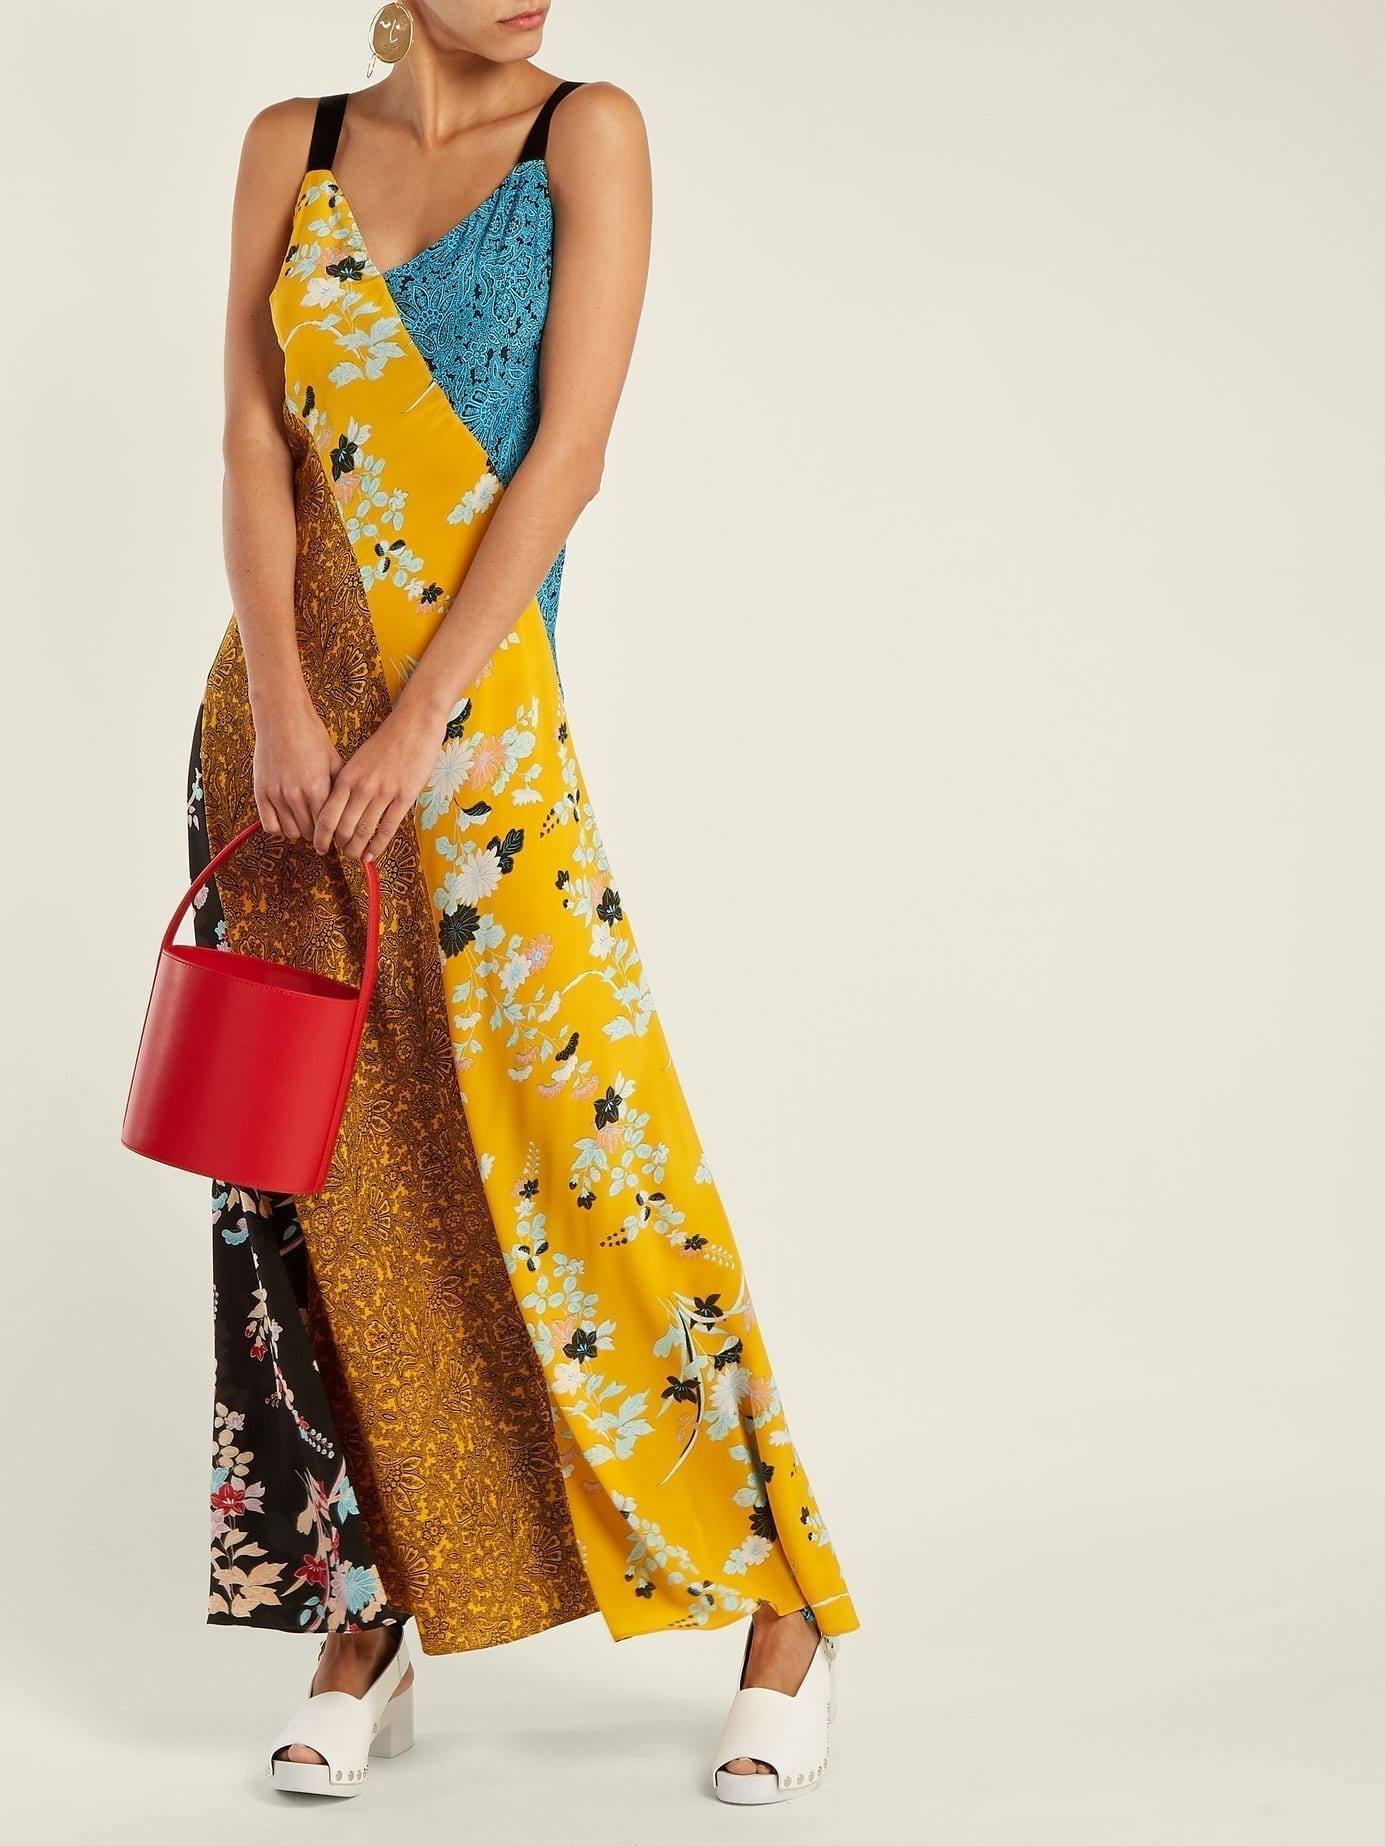 DIANE VON FURSTENBERG Calloway Floral Paisley Print Silk Maxi Sunflower Yellow Dress